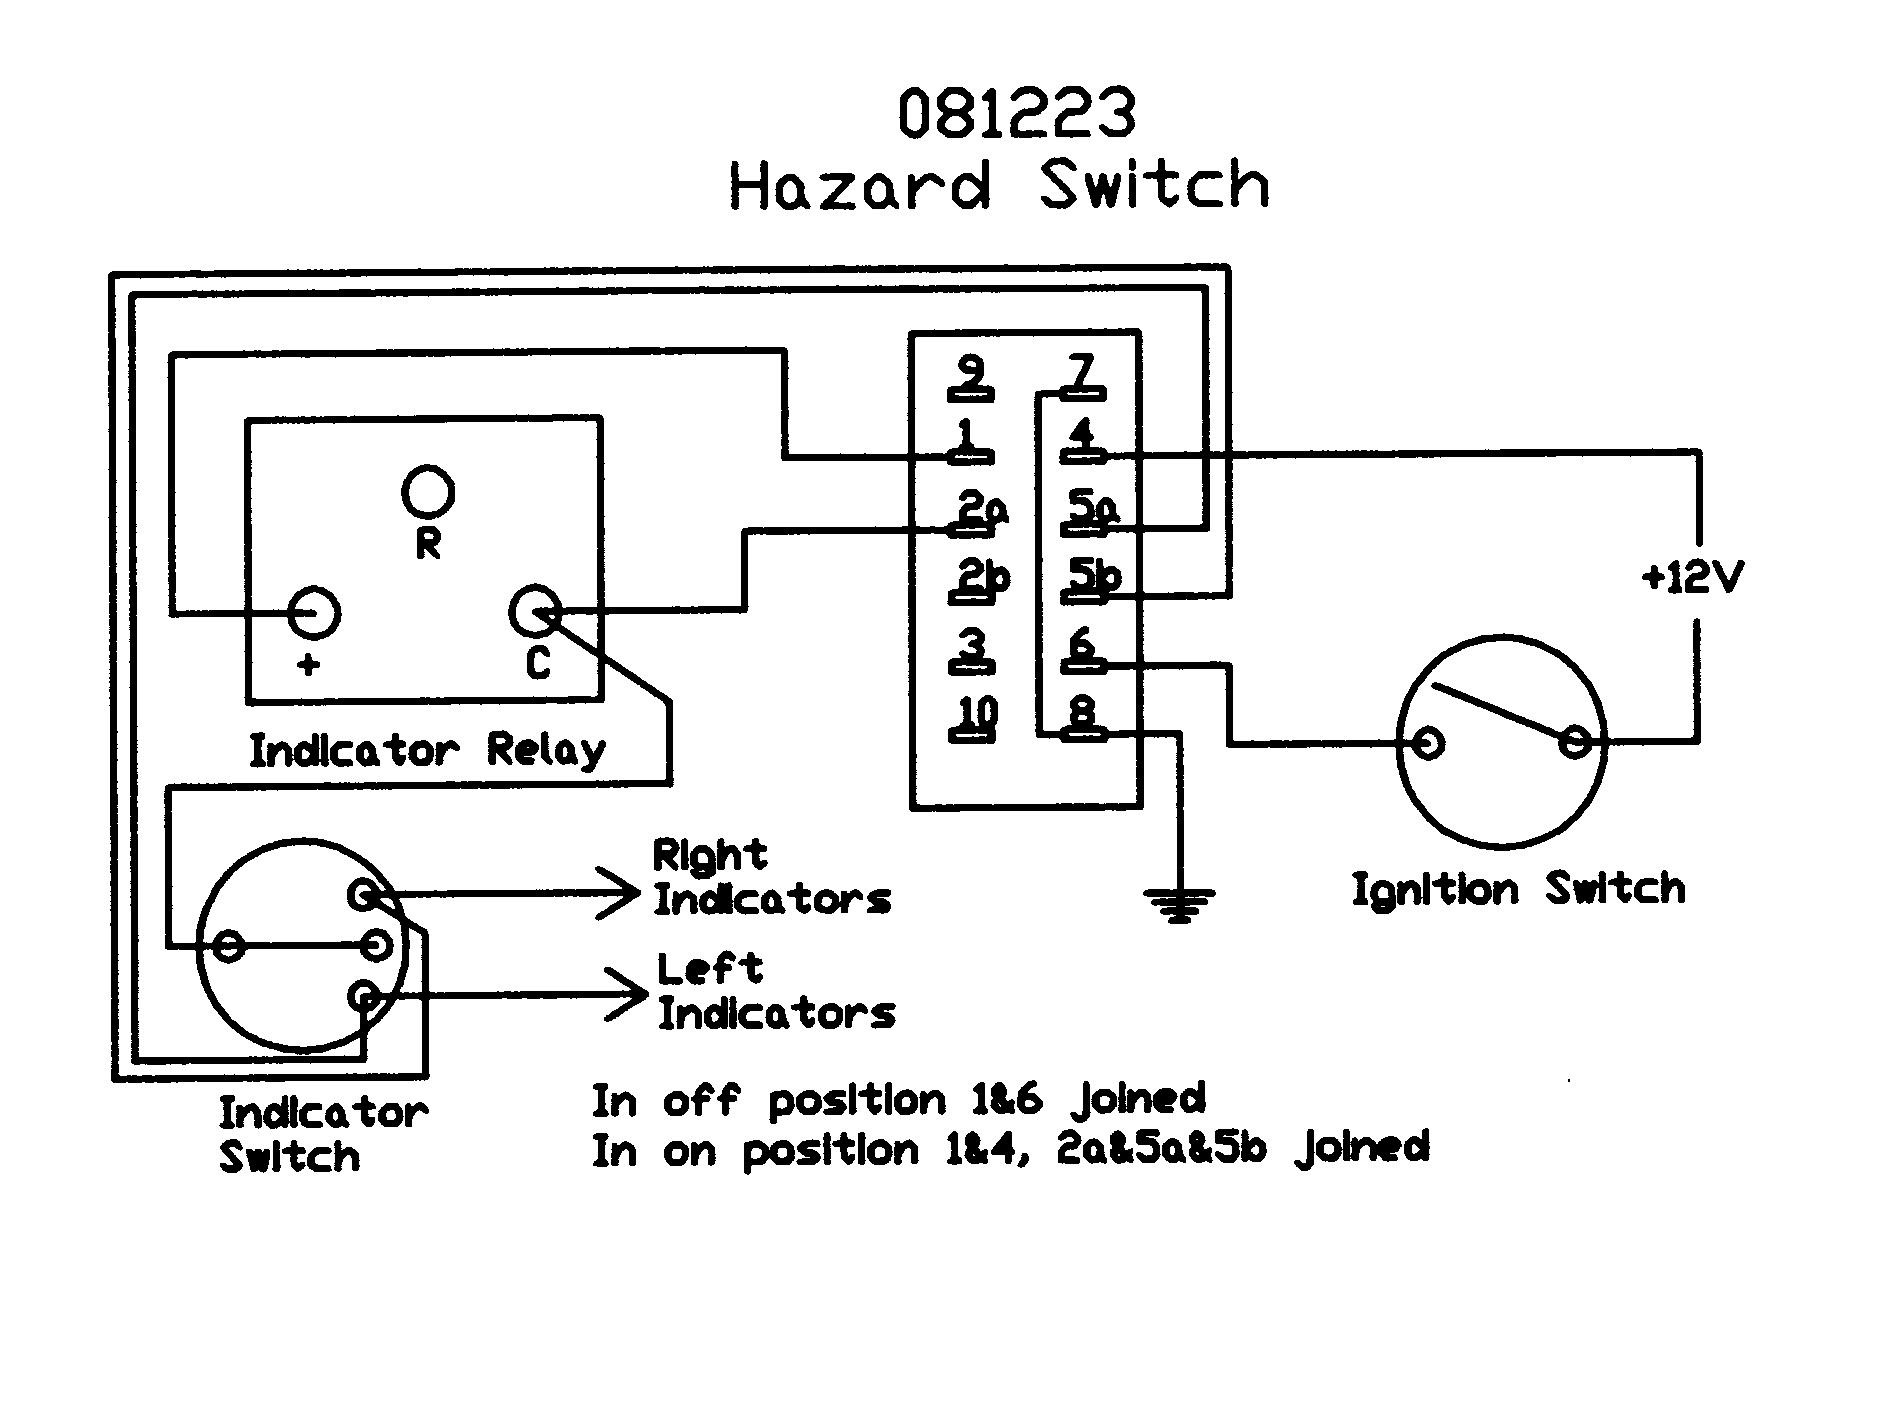 Led Light Drawing At Free For Personal Use Wiring Diagram Rock Lights 1904x1424 Harness Bar Tube Wired Downlight